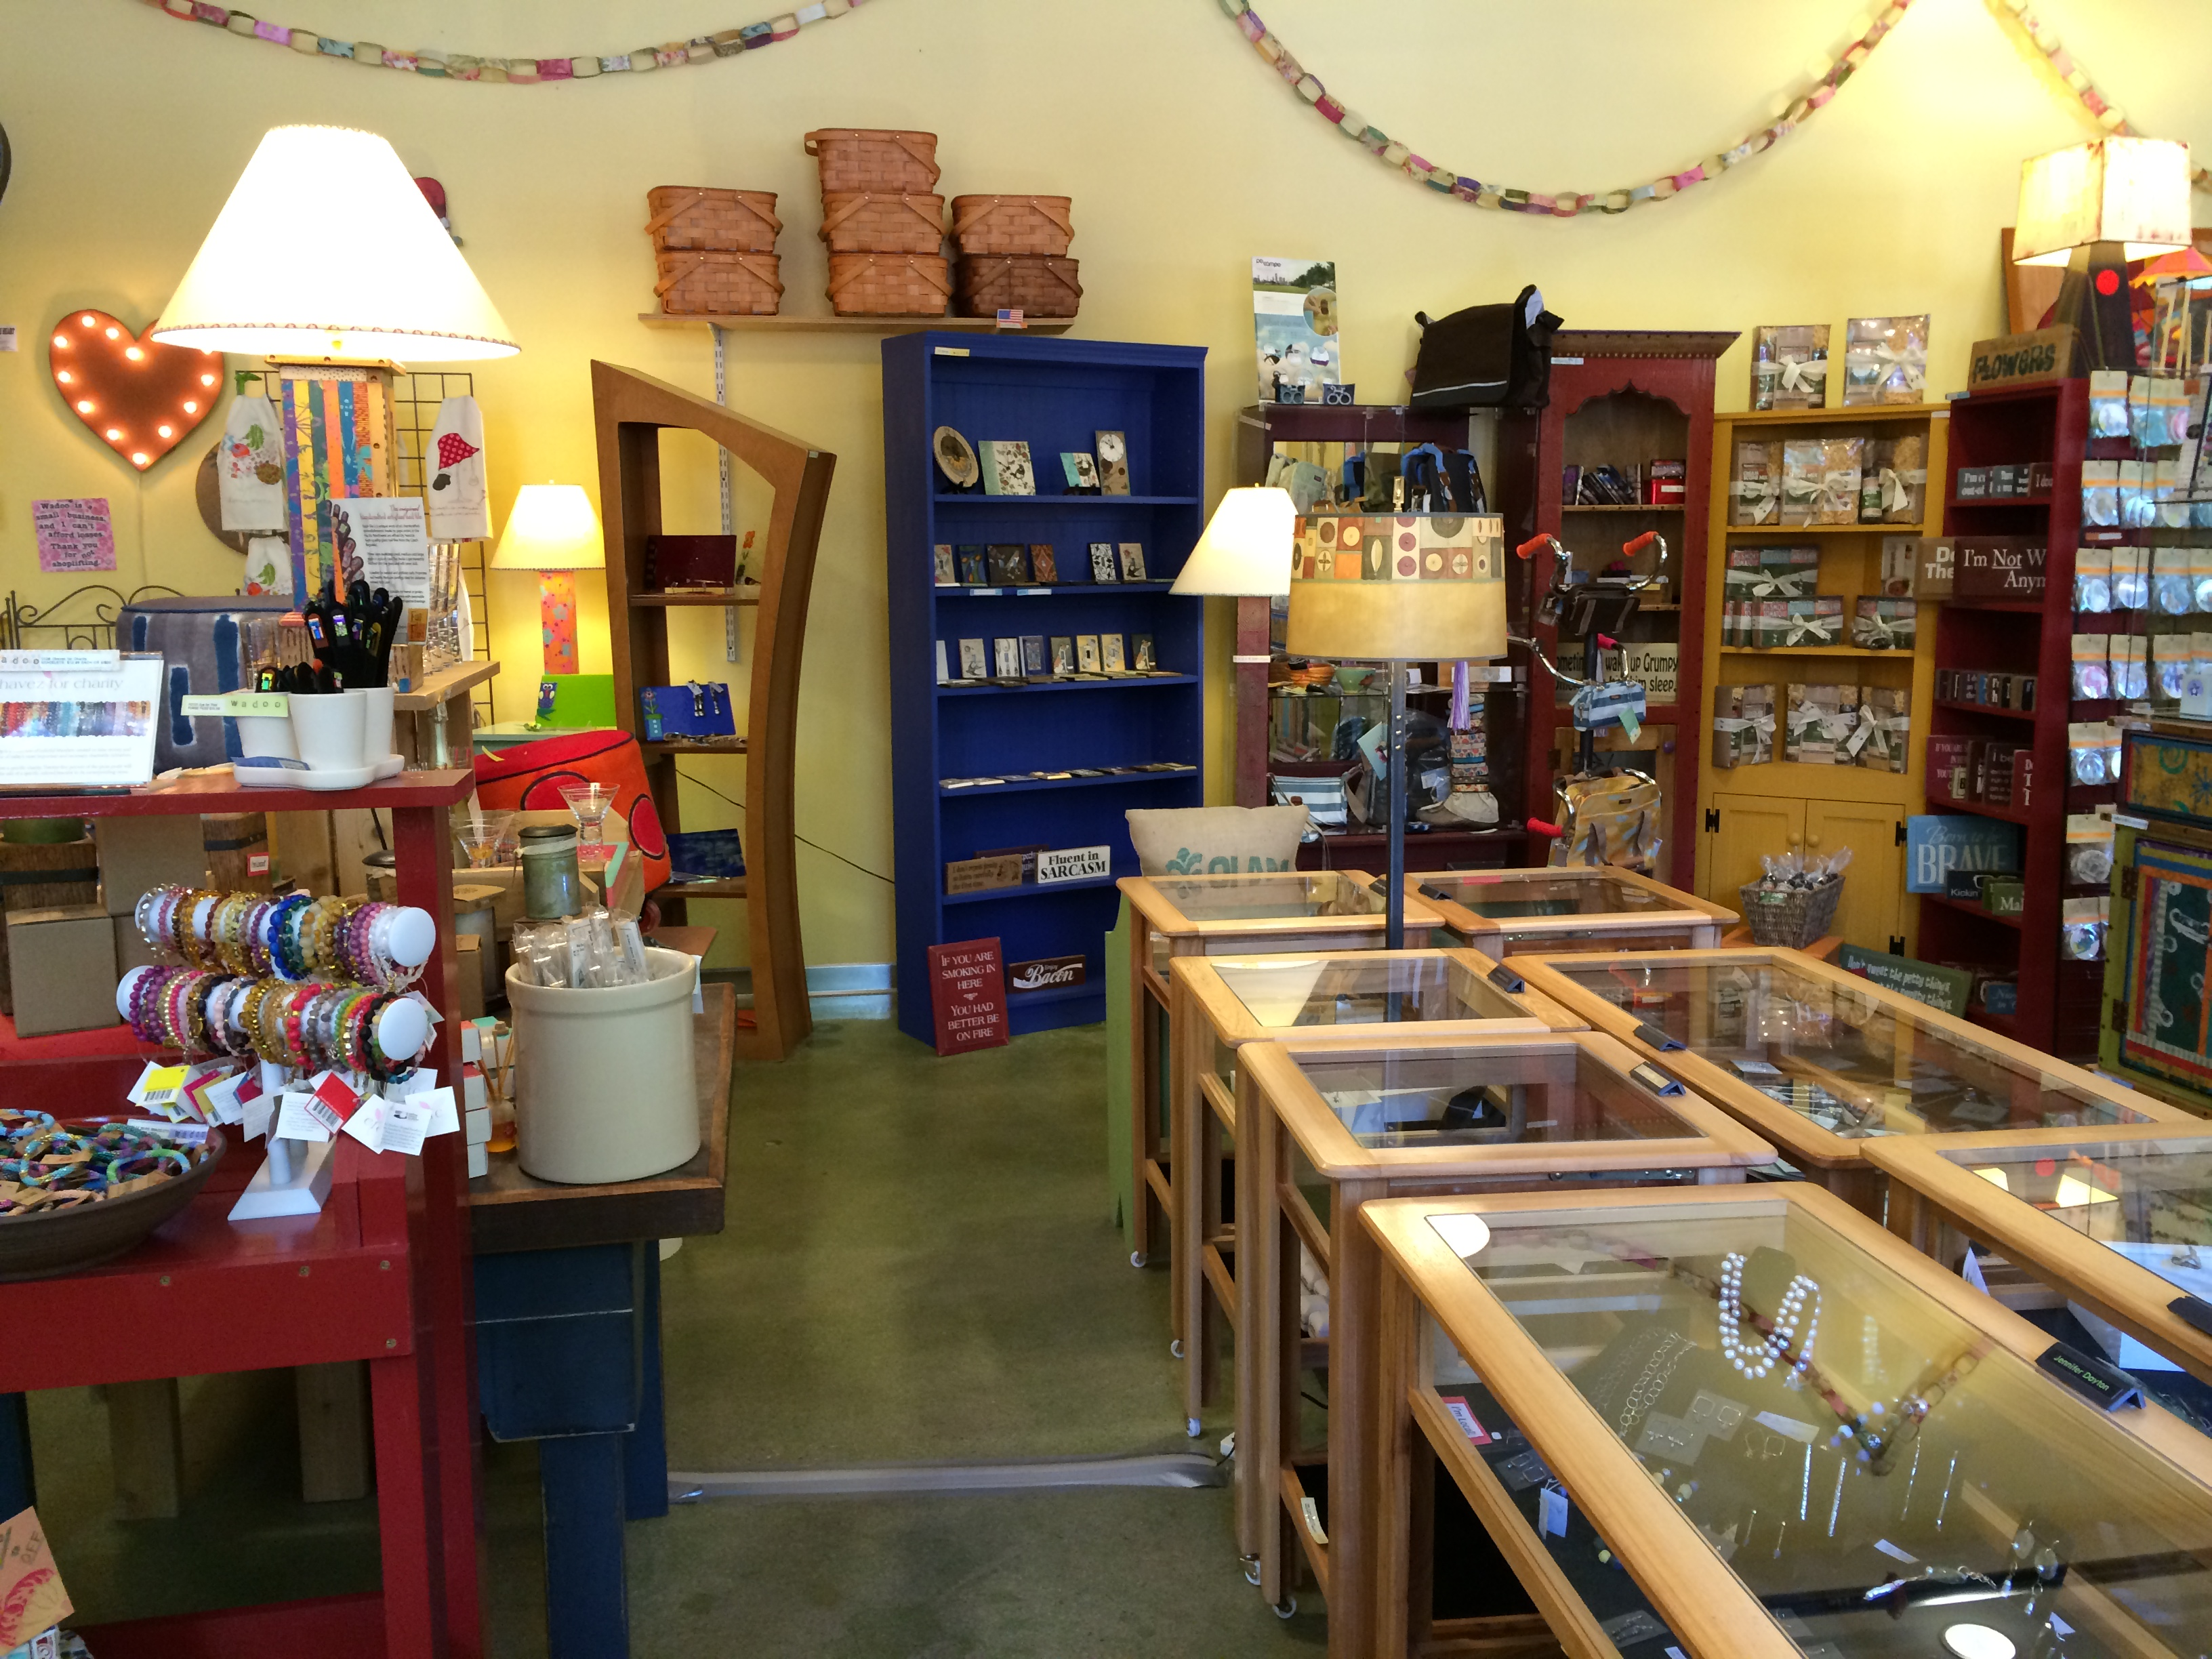 ... Fort Collins Wadoo Furniture And Gifts Jewelry Display Cases, Gifts,  And Furniture